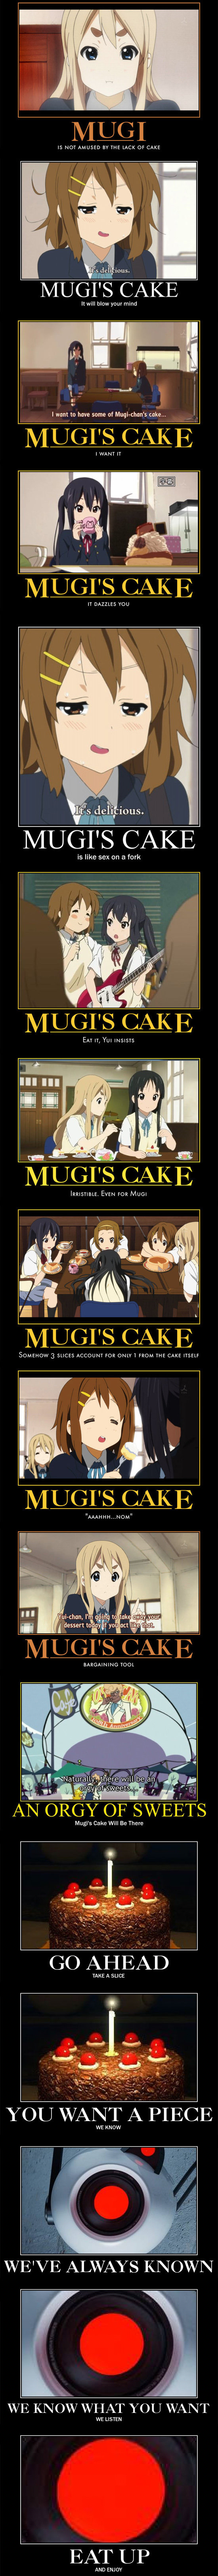 Mugi's Cake. Is it a Lie? (K-On Mots are not mine, portal mots are original) I was torn between animemanga and morbid-channel, I thought it wasn't creepy enough